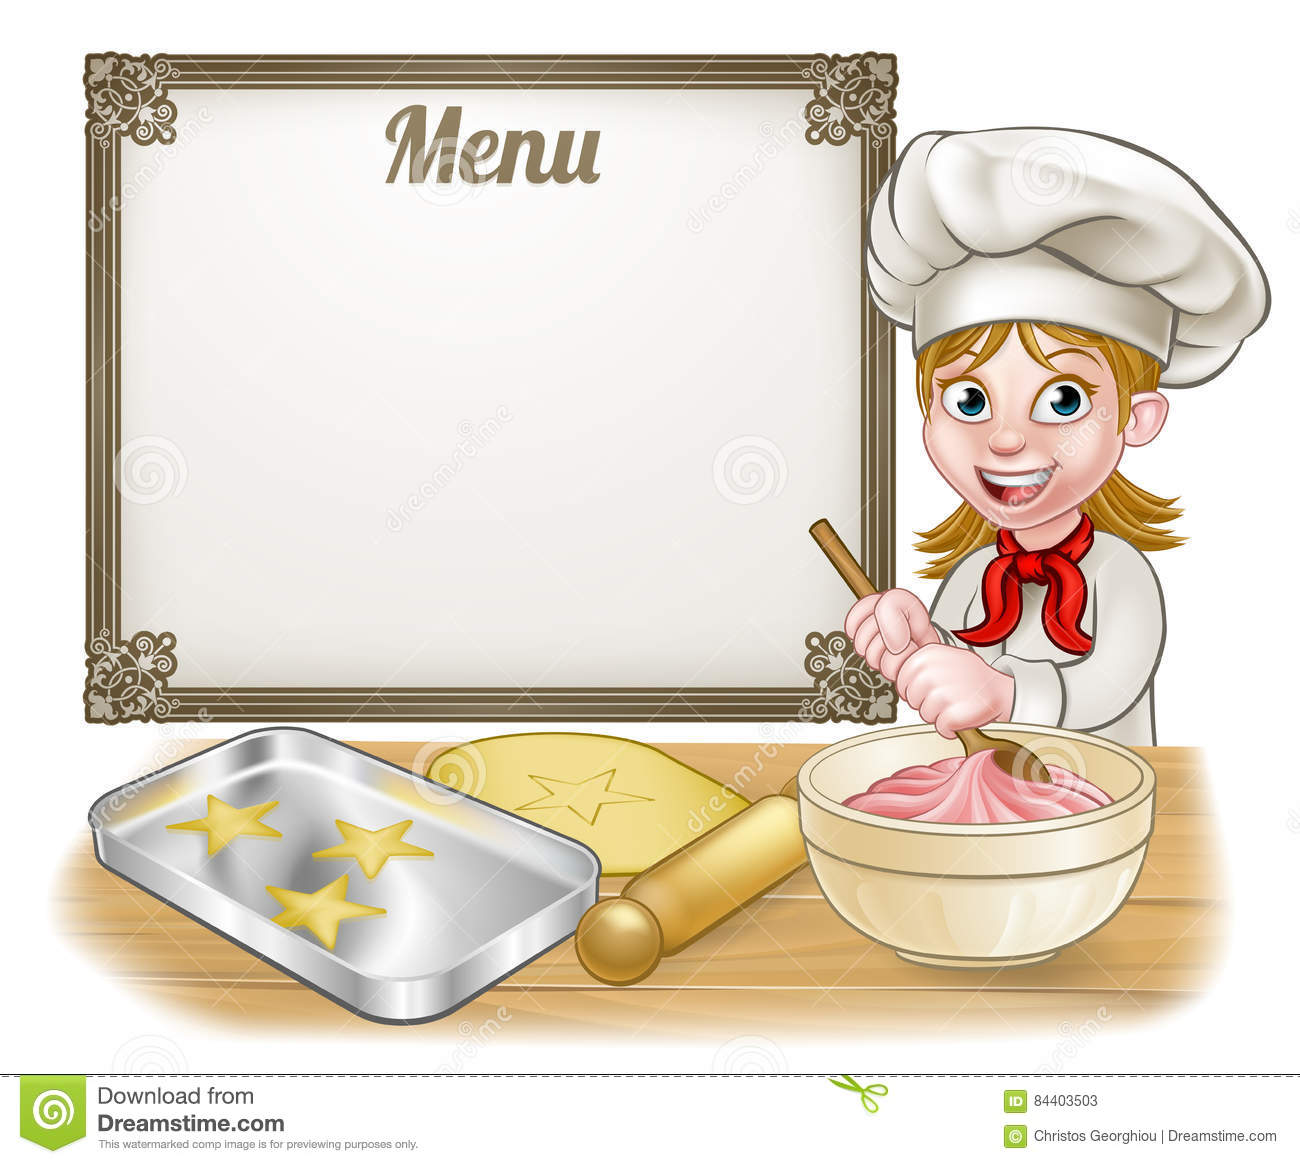 Woman Baker Or Pastry Chef Menu Sign Stock Vector ...